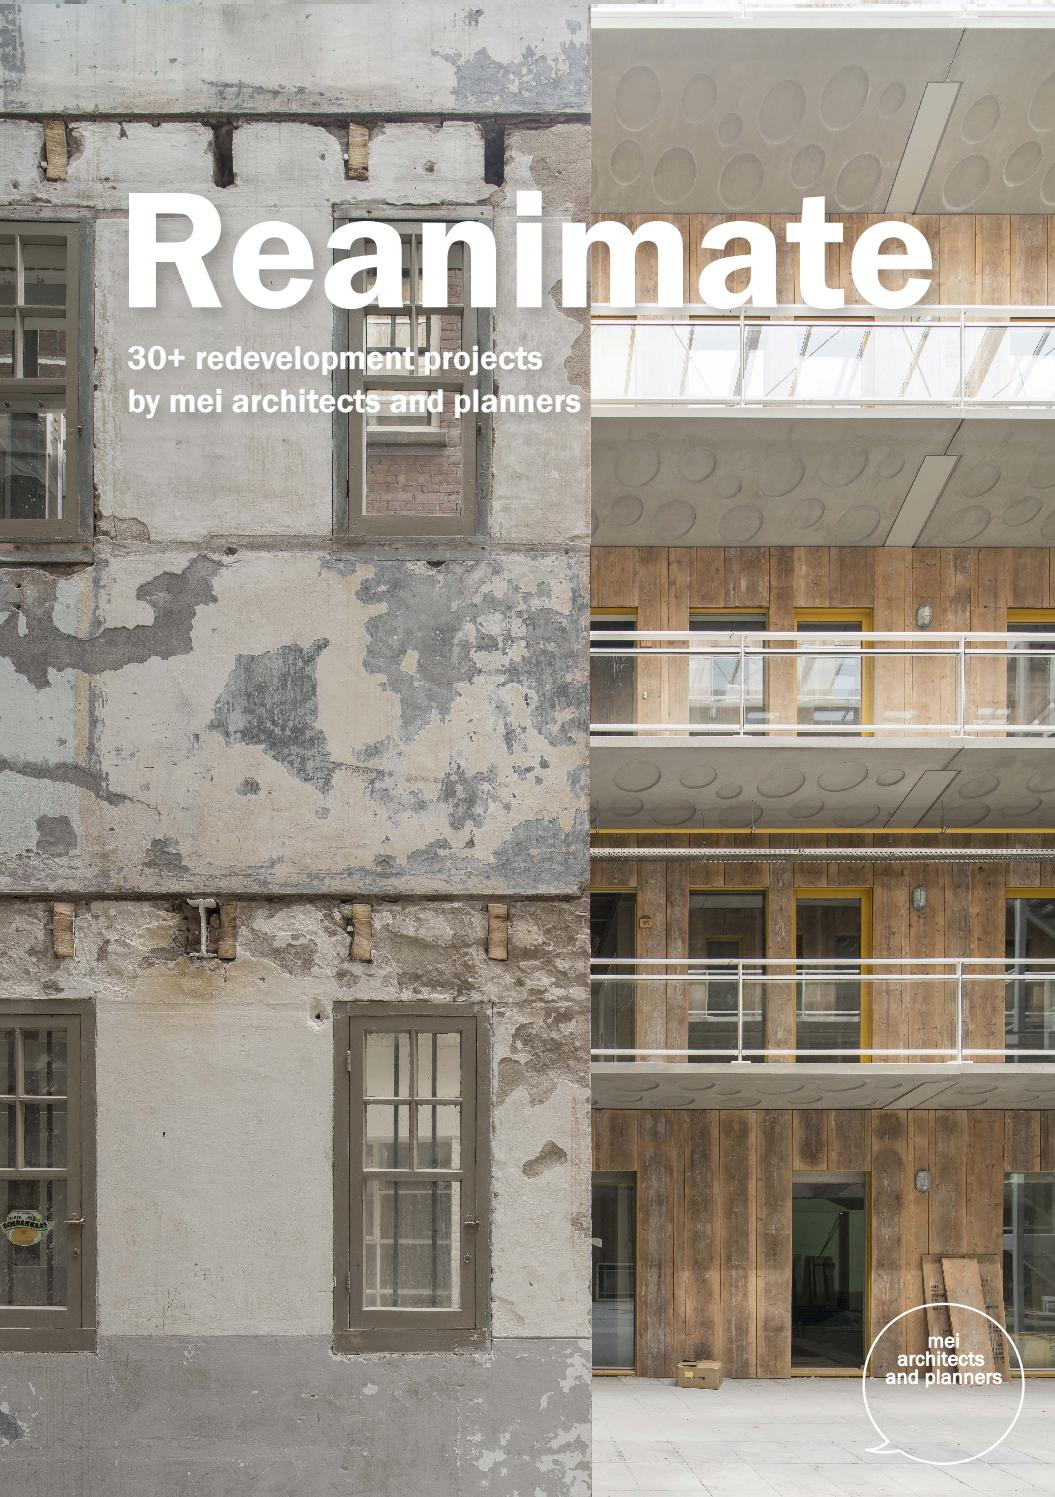 Idee Deco Chic Et Choc reanimate - 30+ redevelopment projectsmei architects and